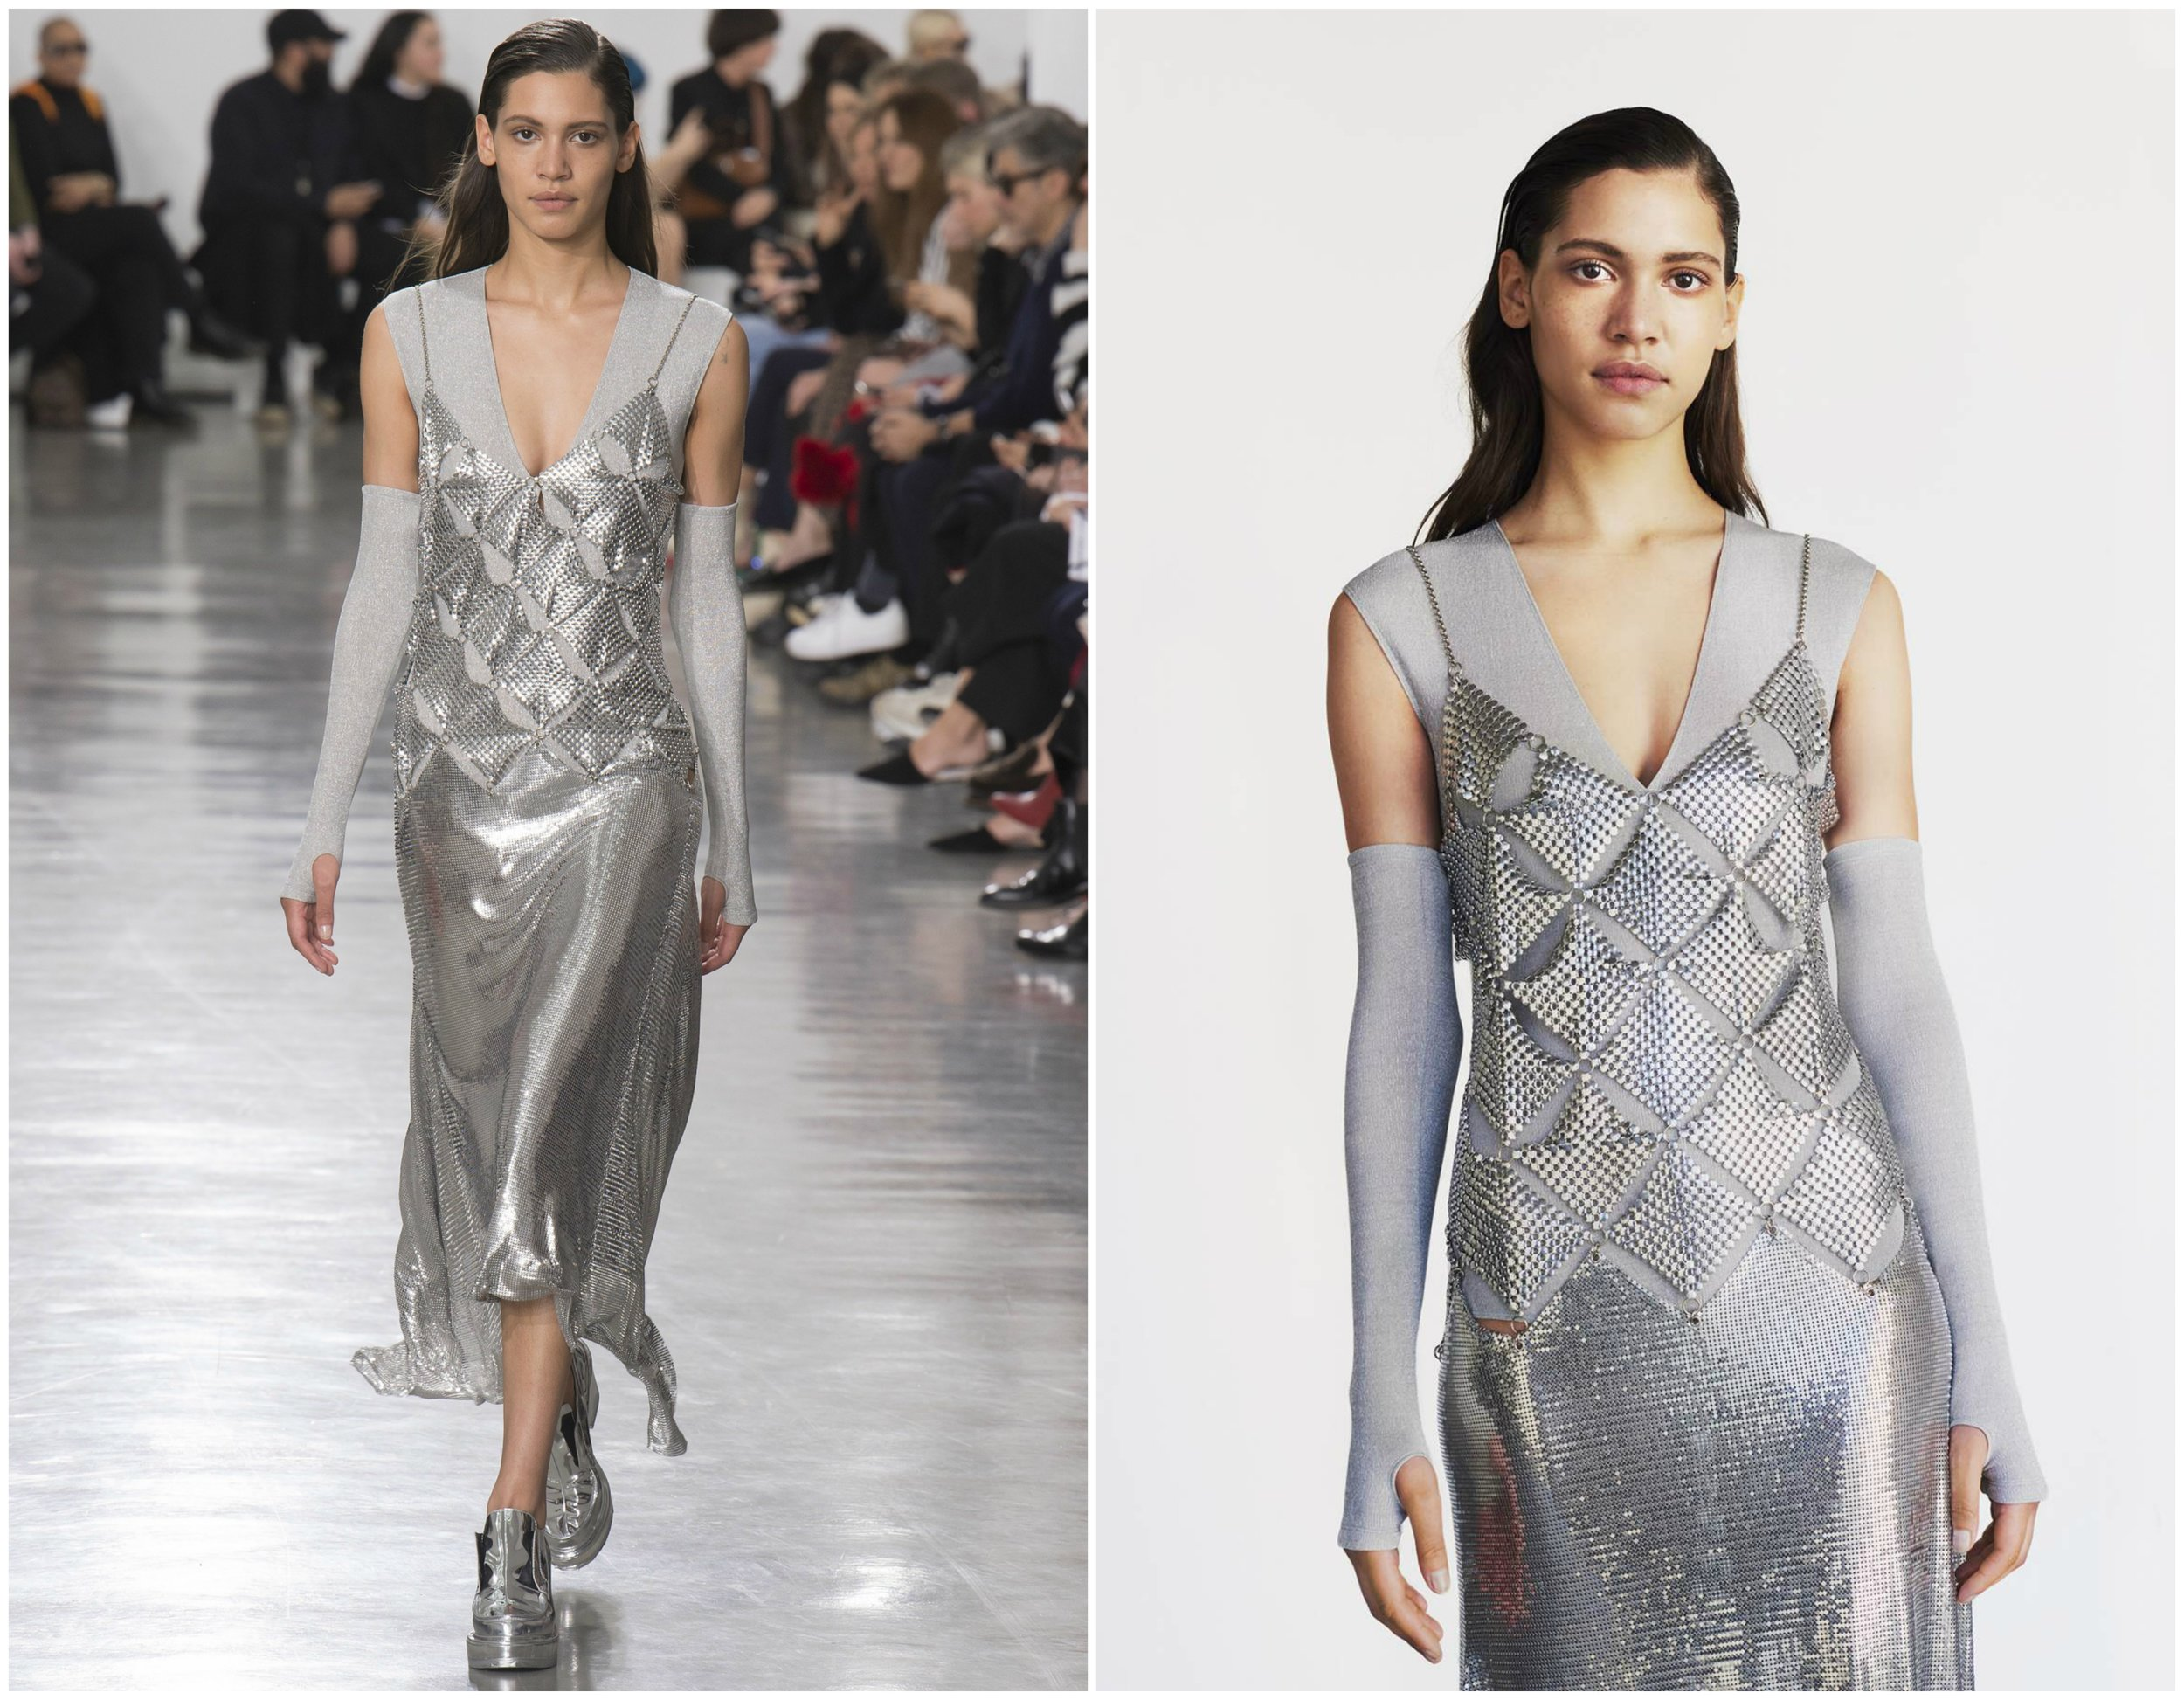 Paco Rabanne combined geometry and fluidity to the utmost perfection in this timeless piece. The  runway dress  is currently available for purchase on their website.